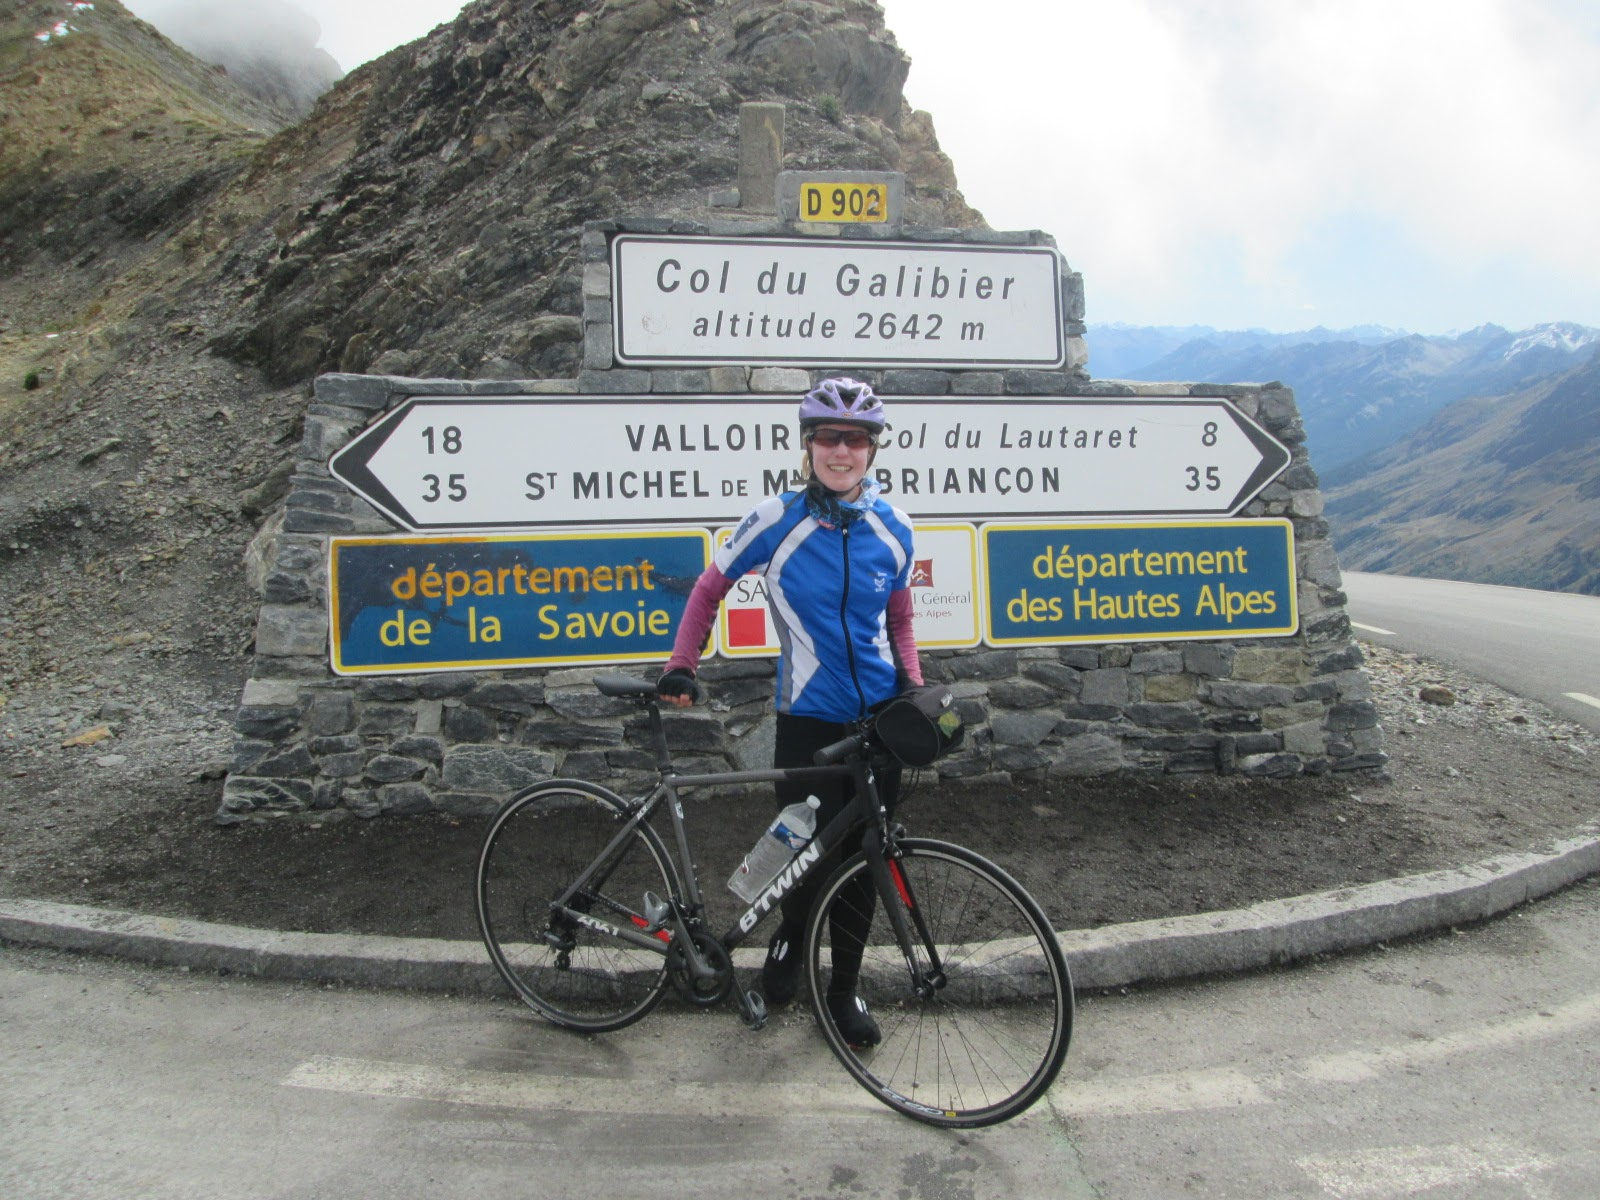 Cycling the Col du Galibier (2642m) from St Jean du Maurienne via Col du 8349a39ab